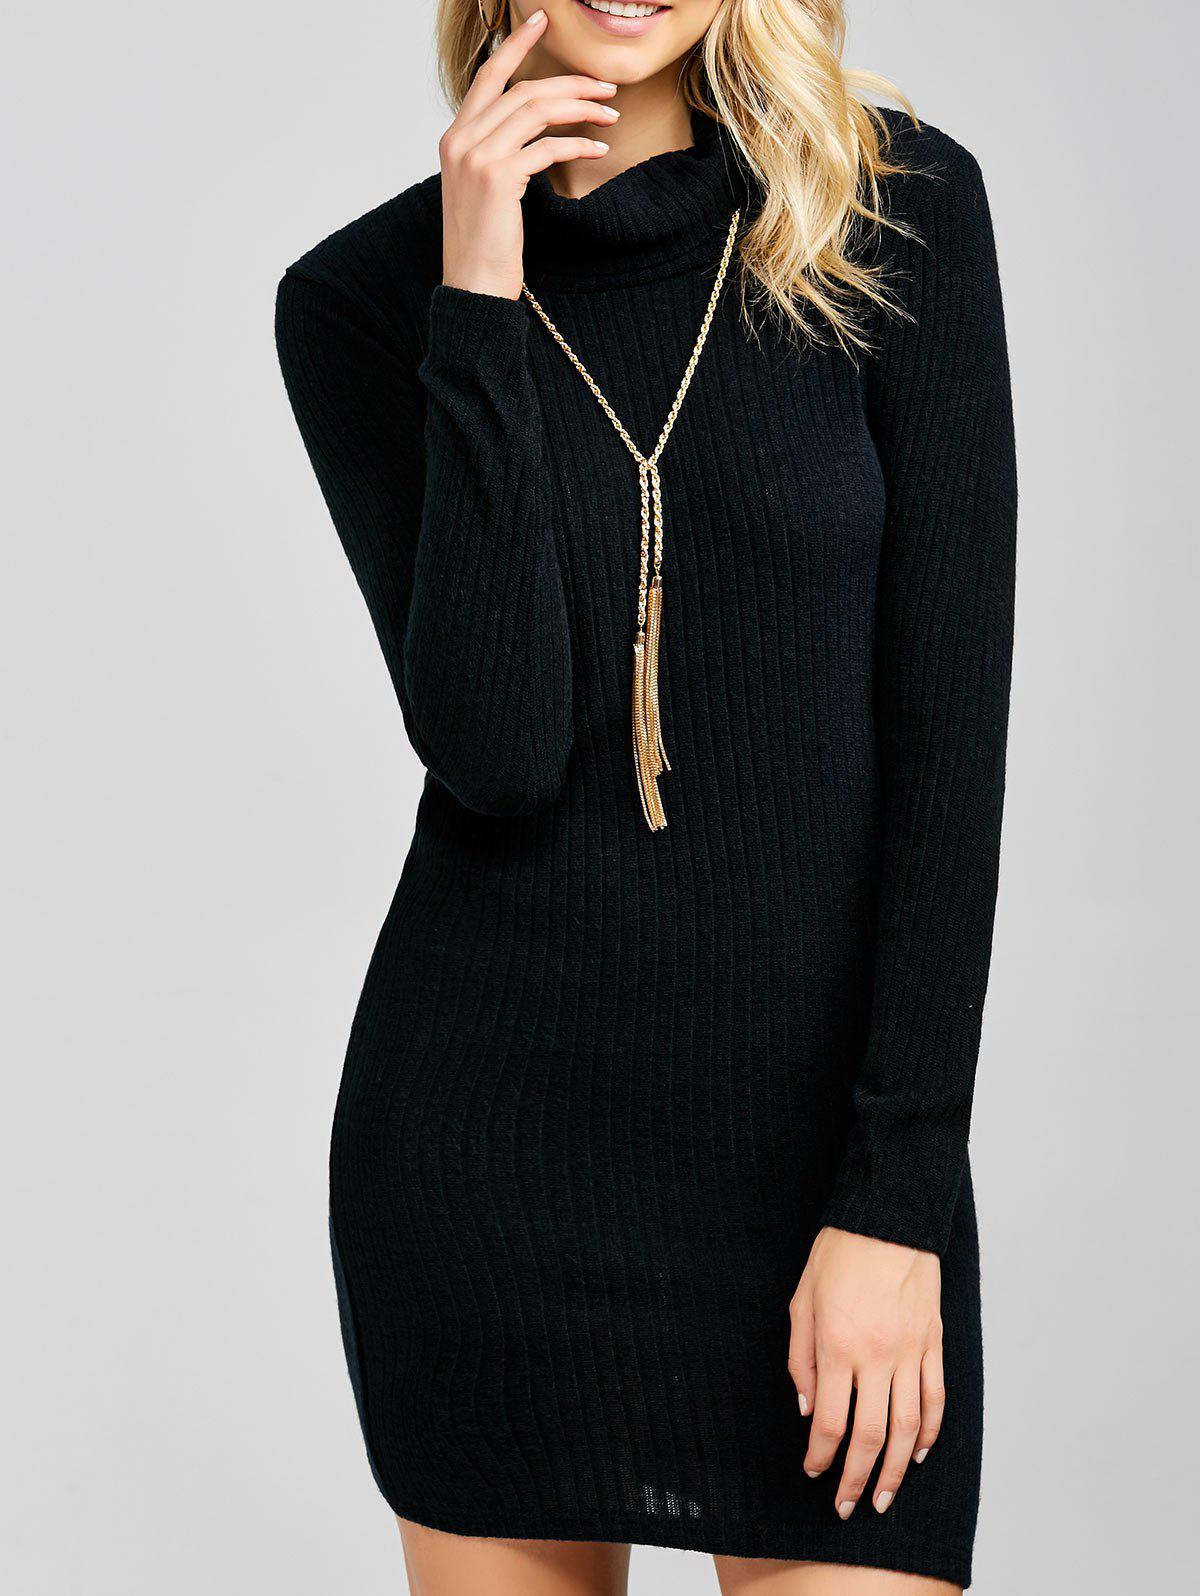 Ribbed Mini Cowl Neck Fitted Sweater Dress inc new black women s p petite ribbed cowl neck studded tunic sweater $69 071